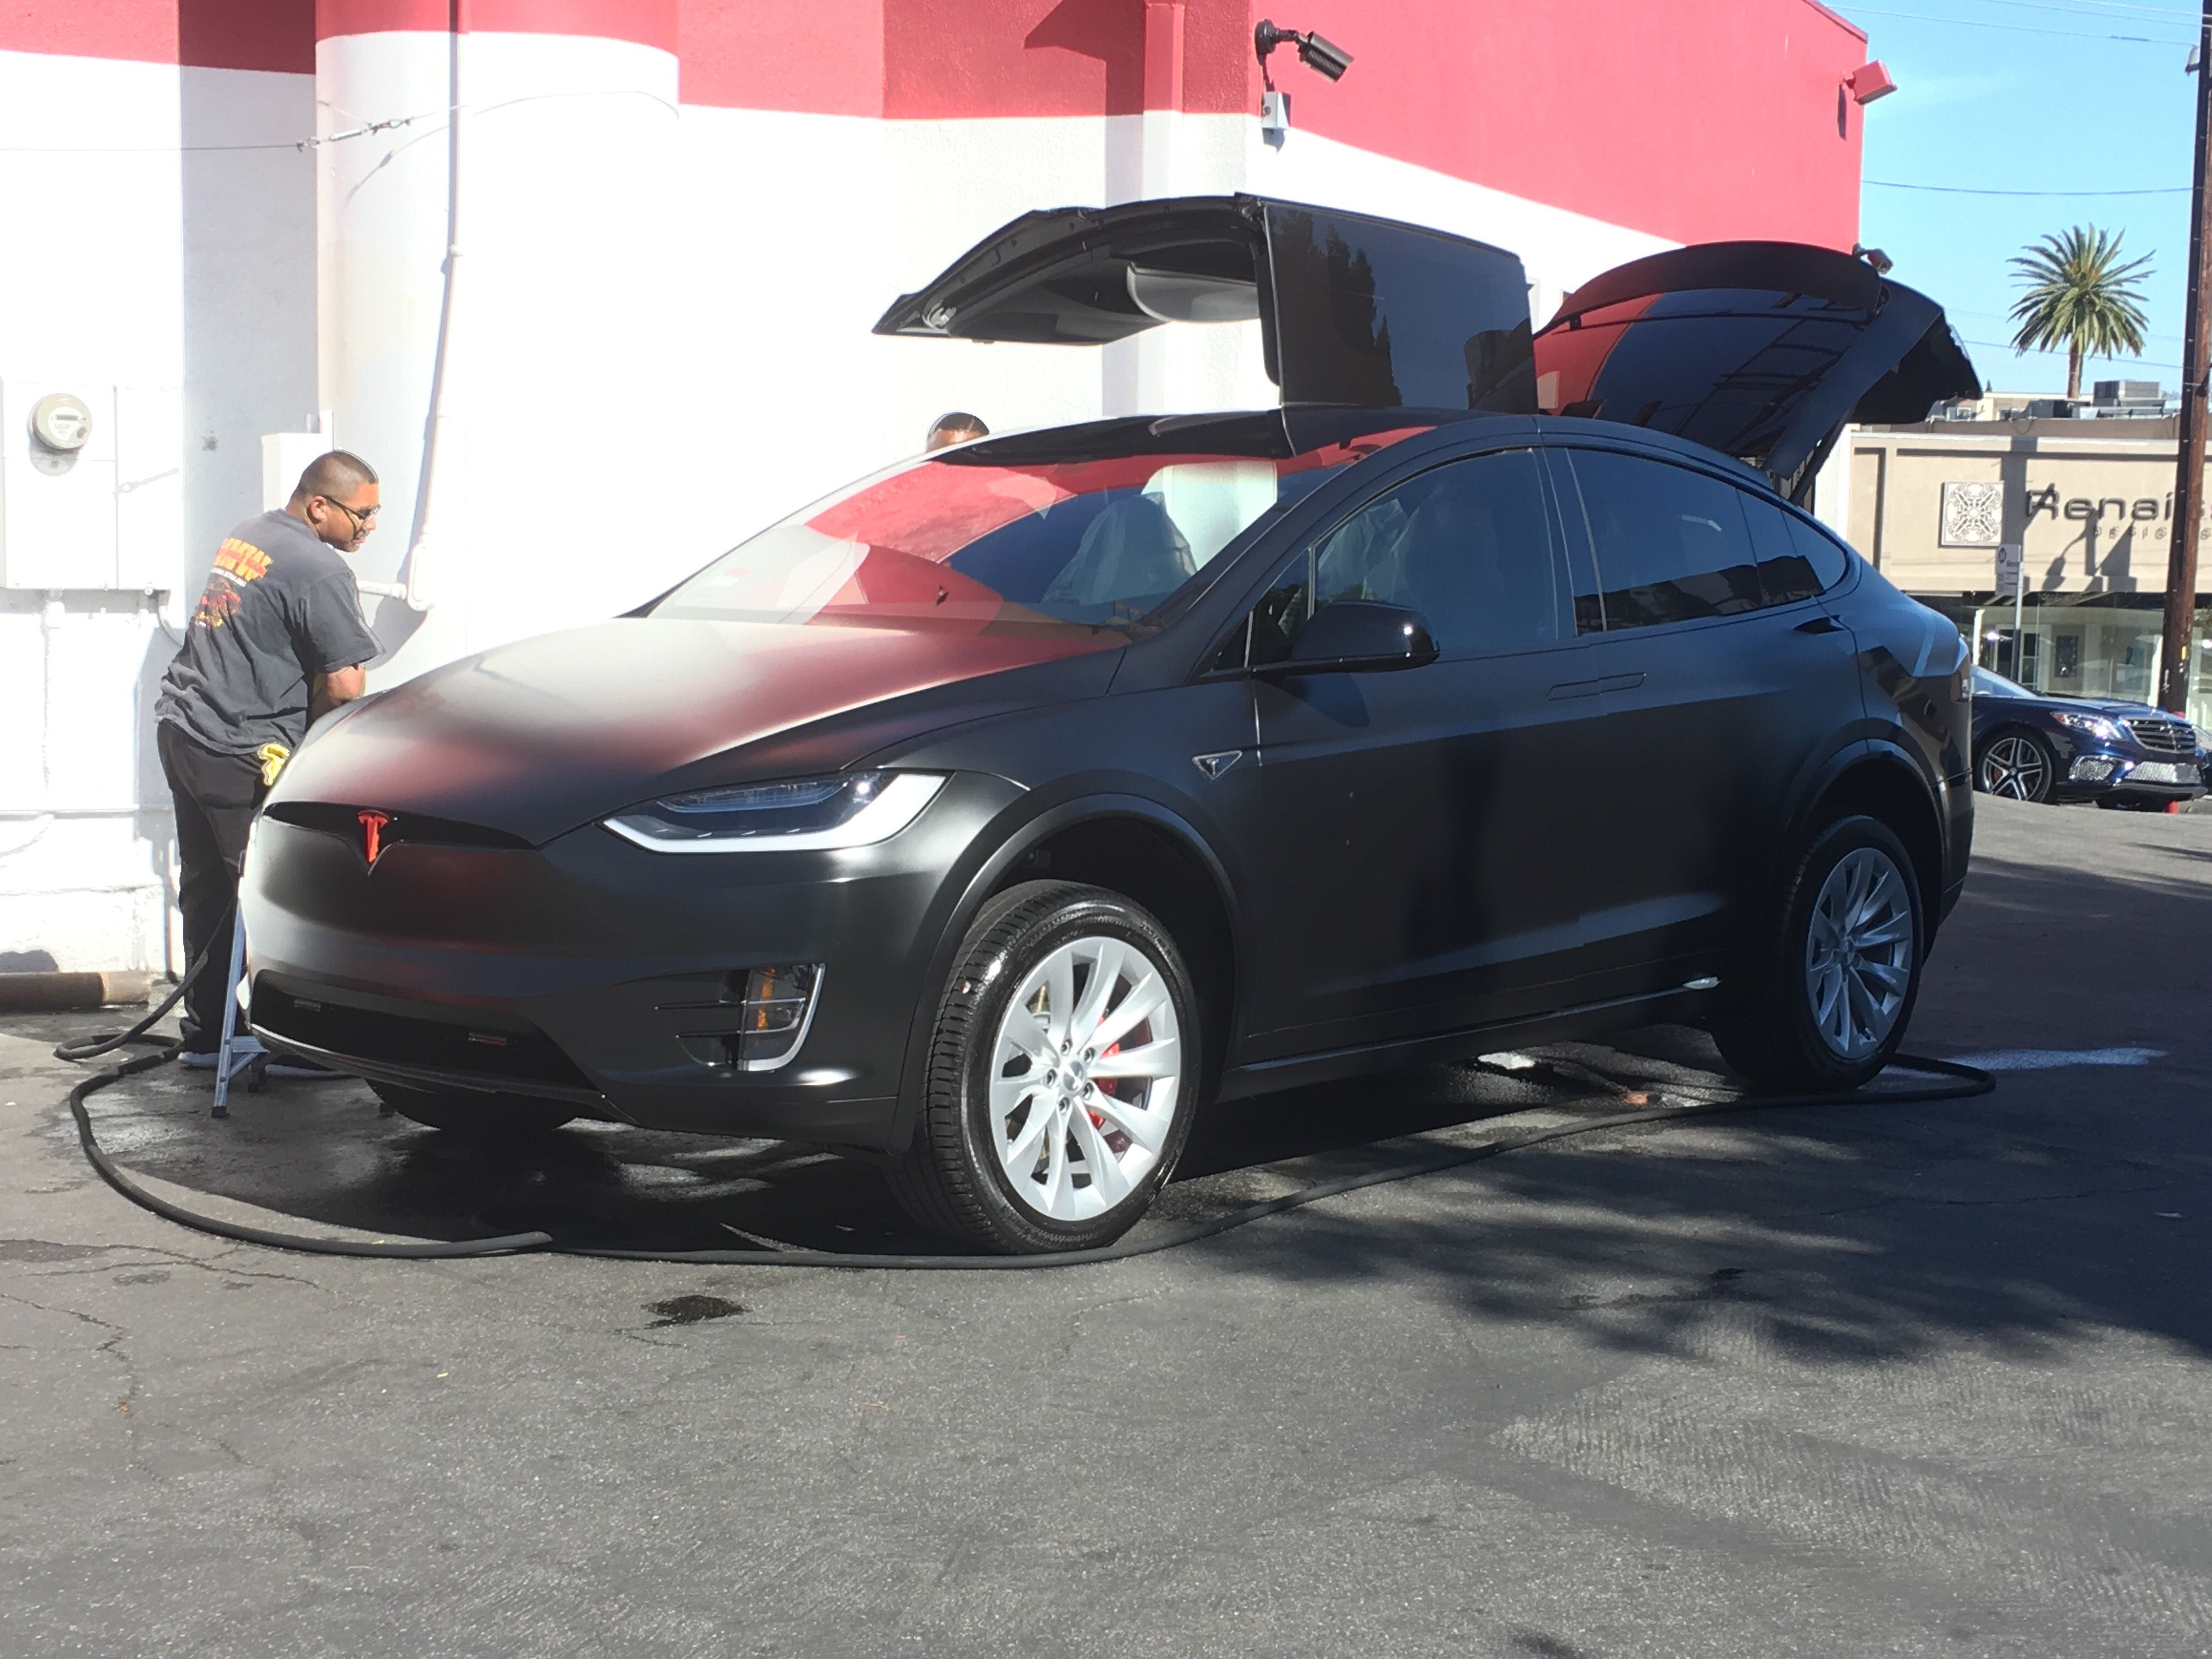 44 best tesla model x images on pinterest tesla model x electric cars and electric vehicle